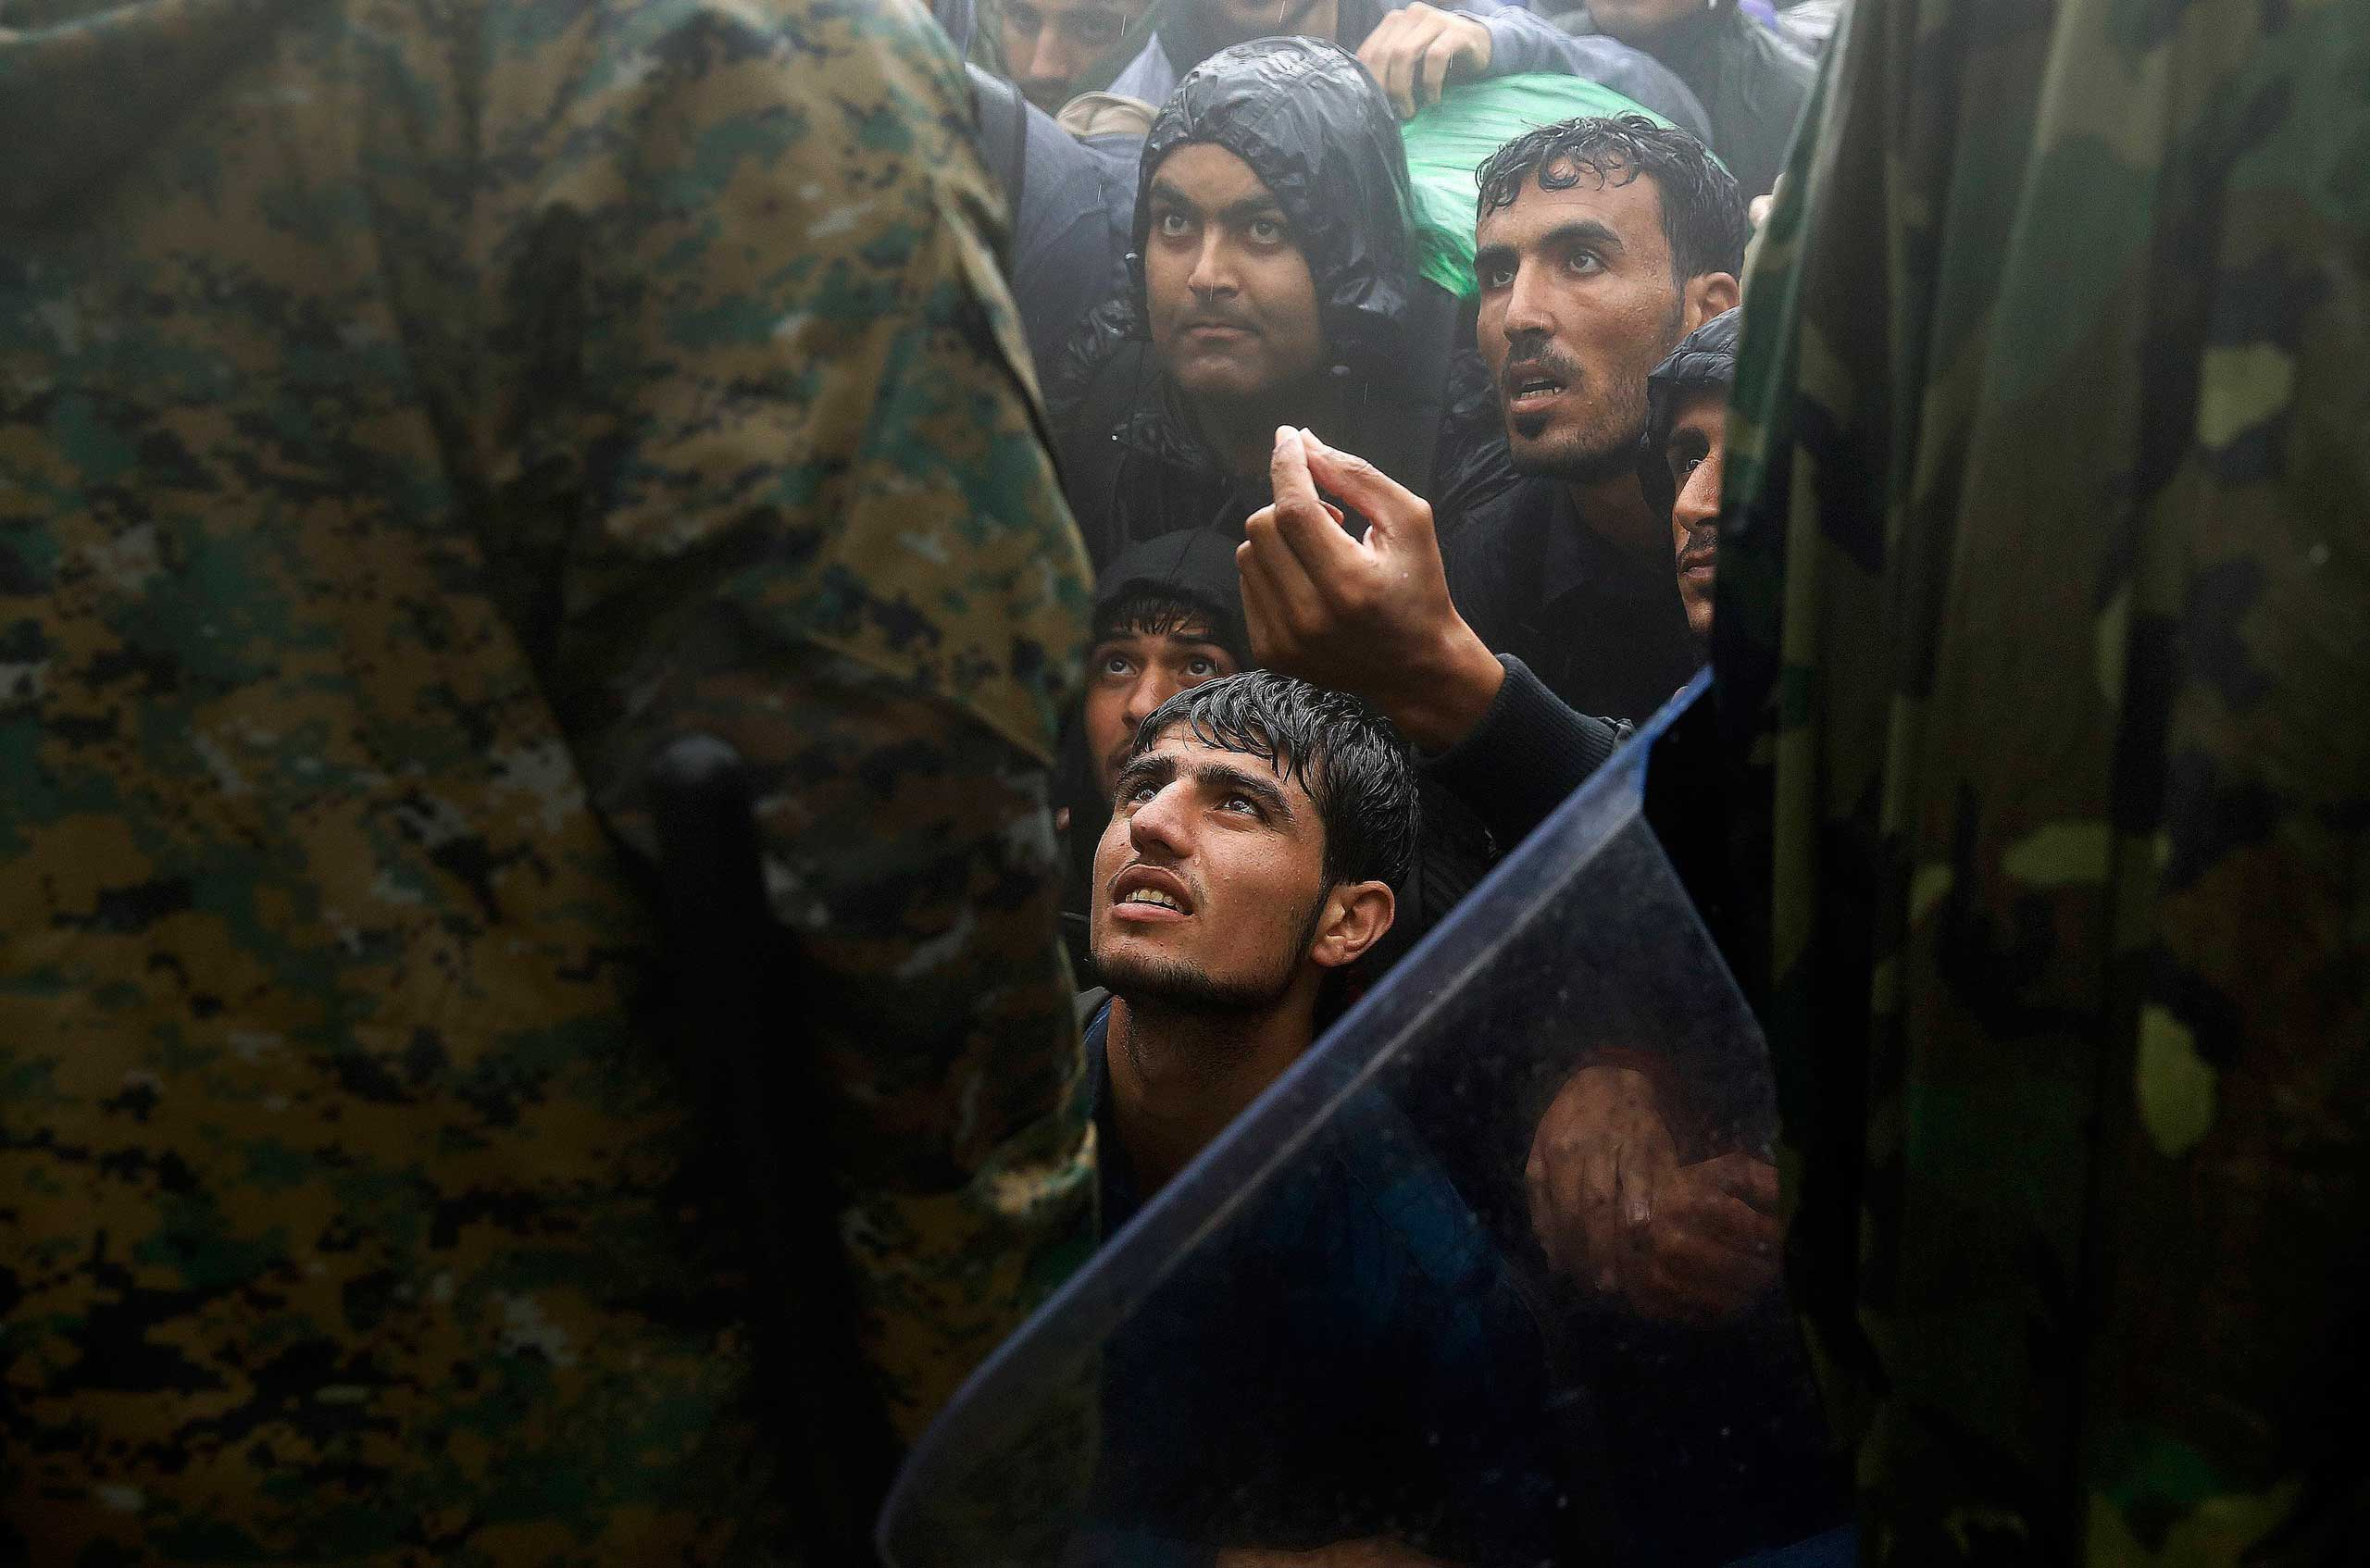 Migrants and refugees beg Macedonian police to allow passage to cross the border from Greece into Macedonia during a rainstorm, near the Greek village of Idomeni, on Sept. 10, 2015.